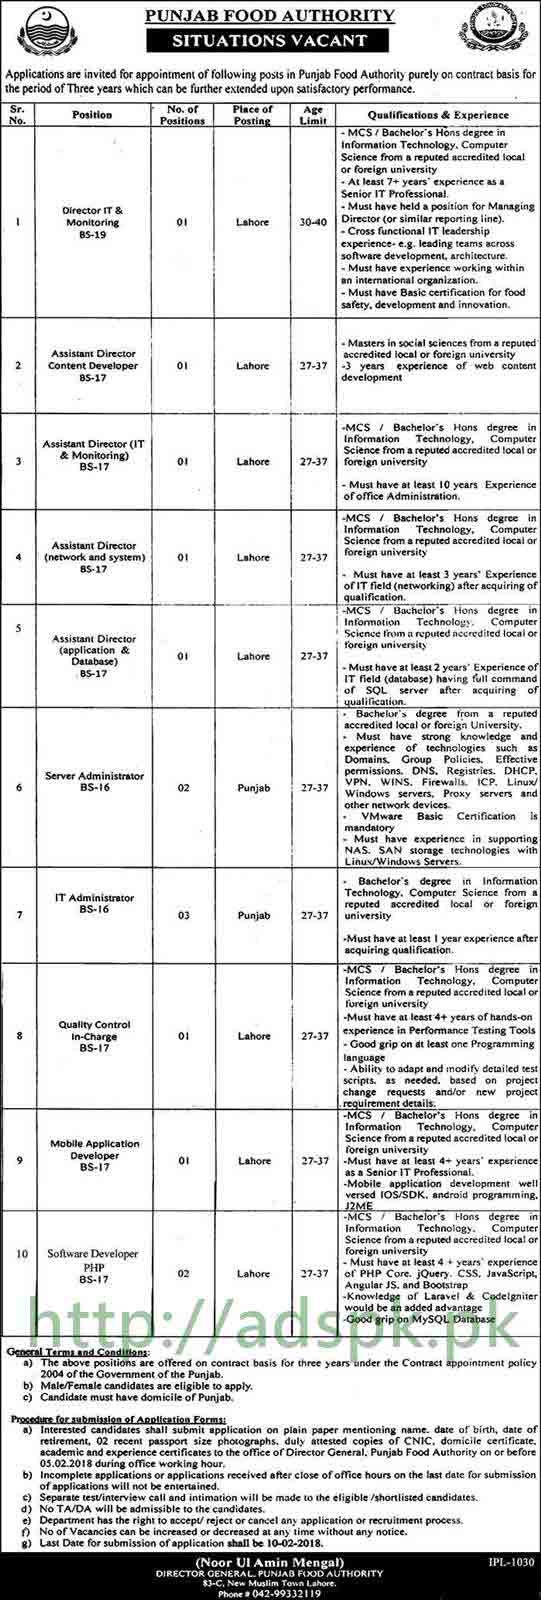 Punjab Food Authority PFA Lahore Jobs 2018 Director IT & Monitoring Assistant Directors Server IT Admin Mobile App Developer Software Developer Jobs Application Deadline 10-02-2018 Apply Now